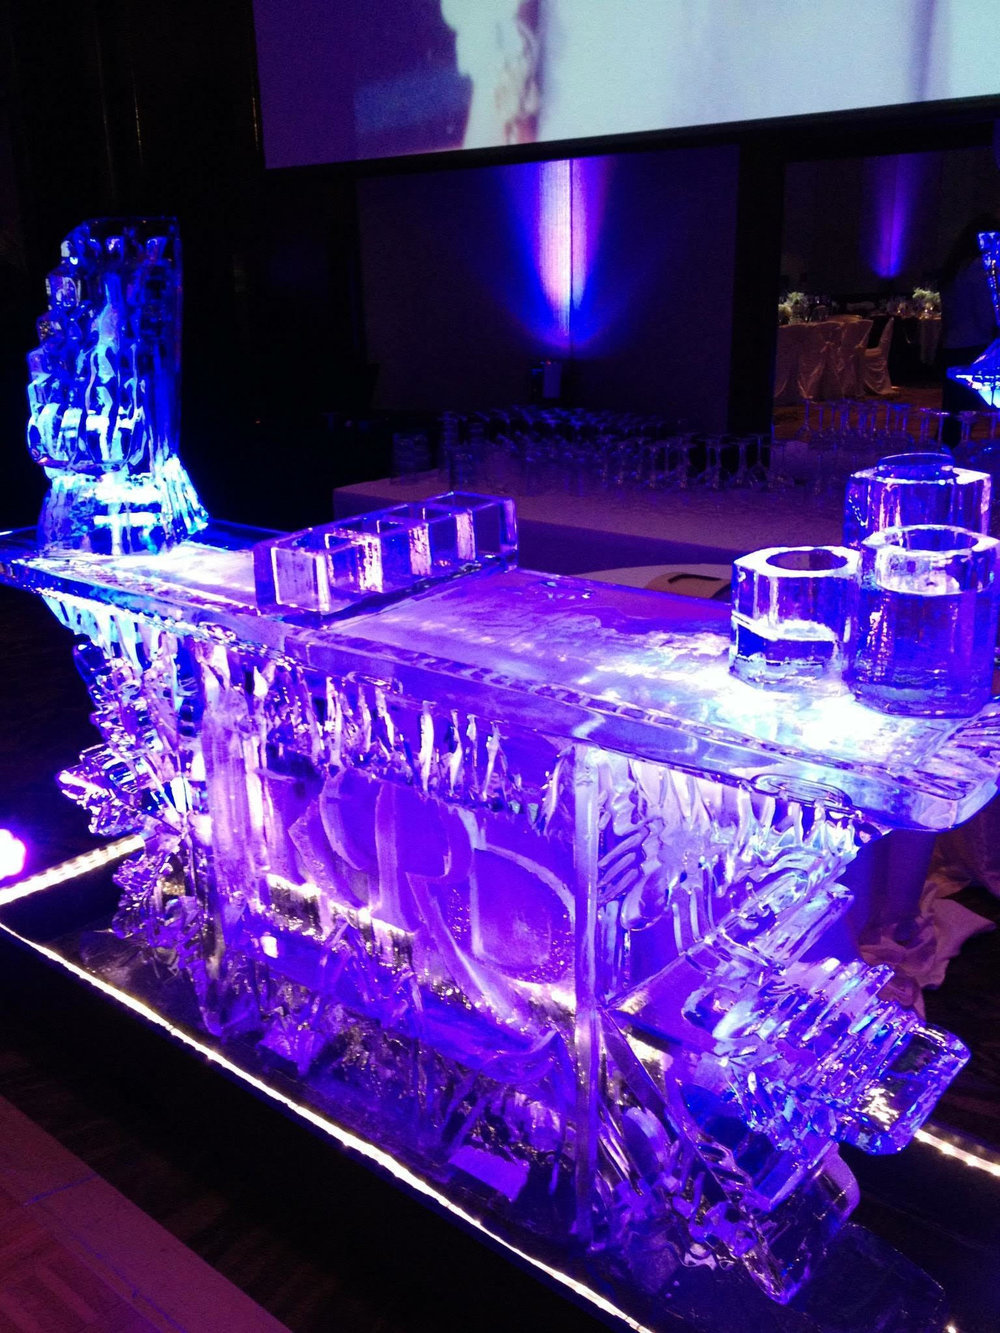 ice-sculptures-4.jpg